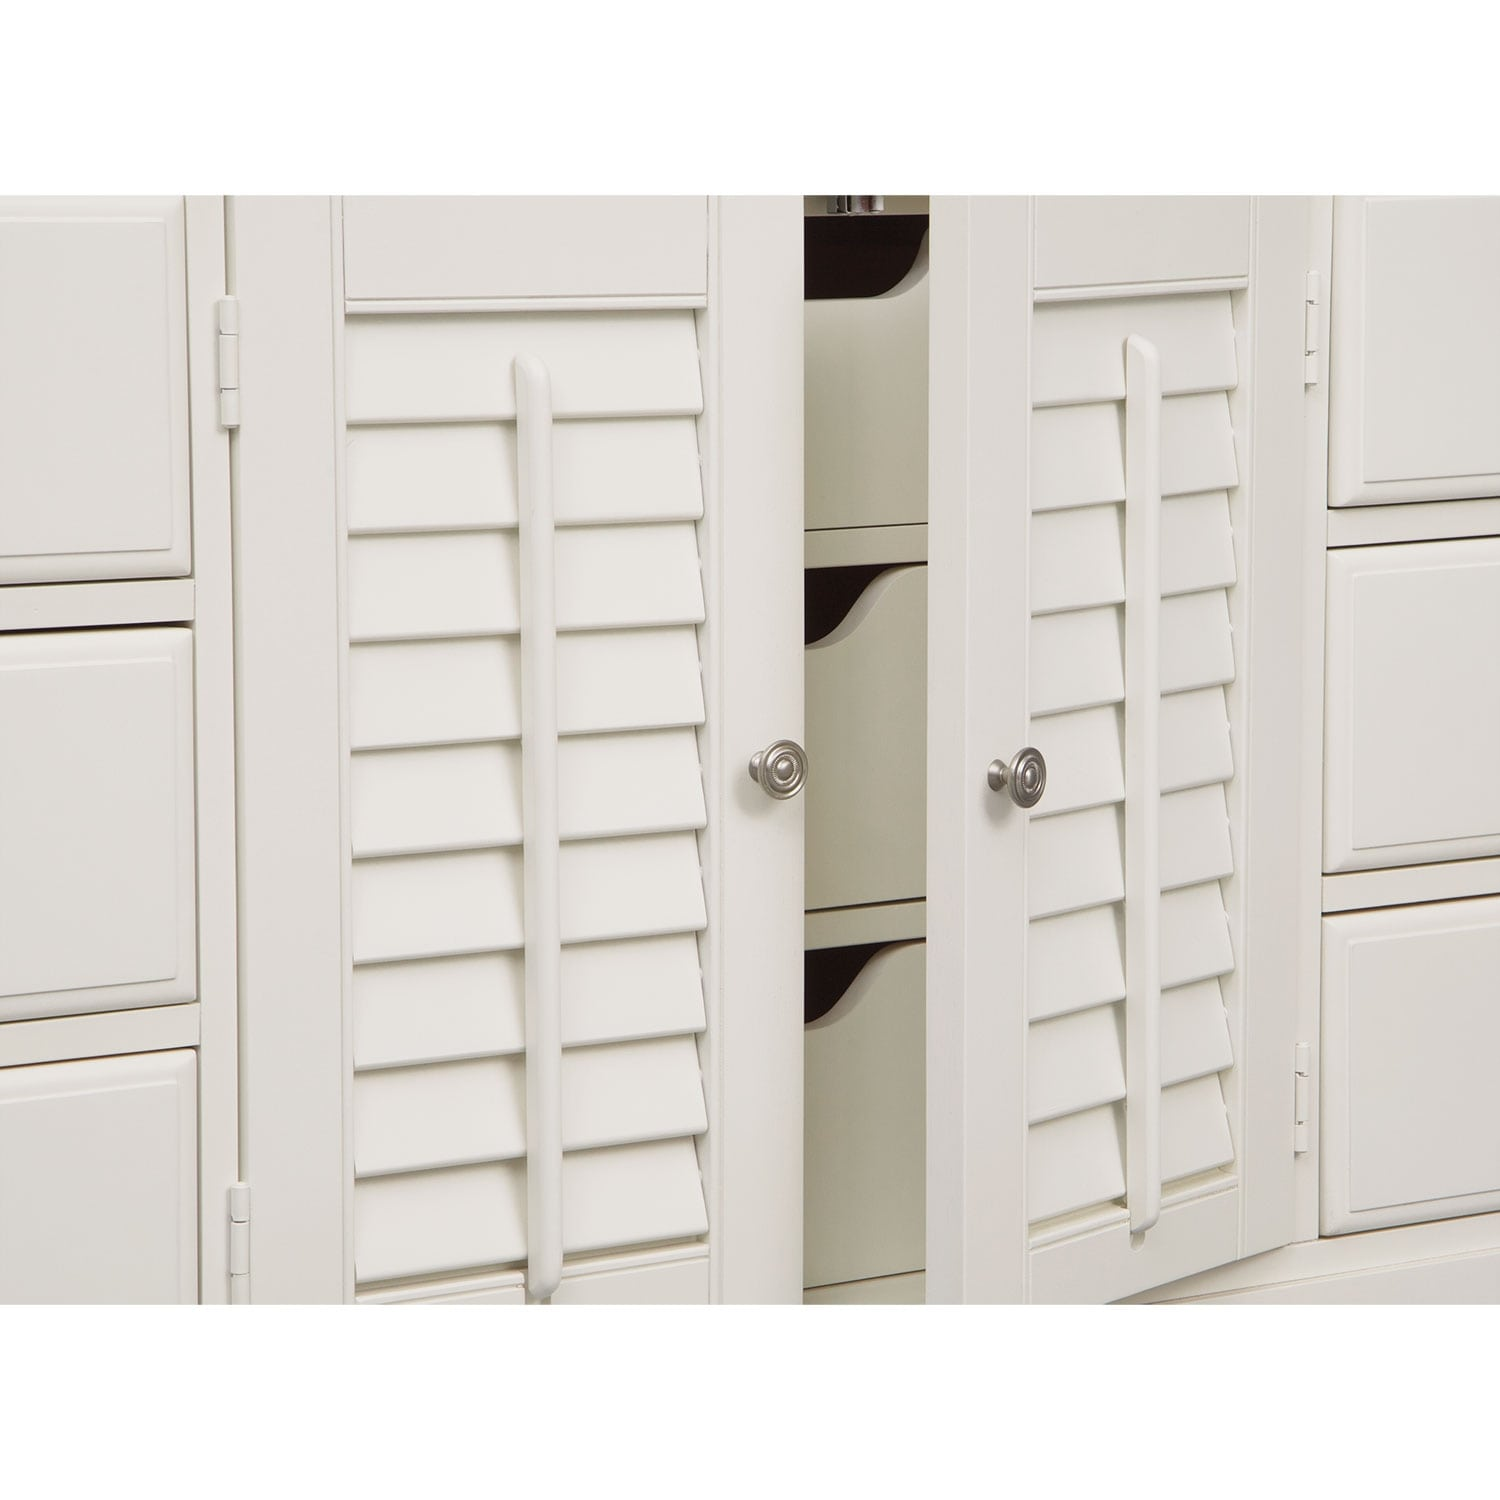 Plantation cove 6 piece full bedroom set with door - Plantation cove bedroom furniture ...